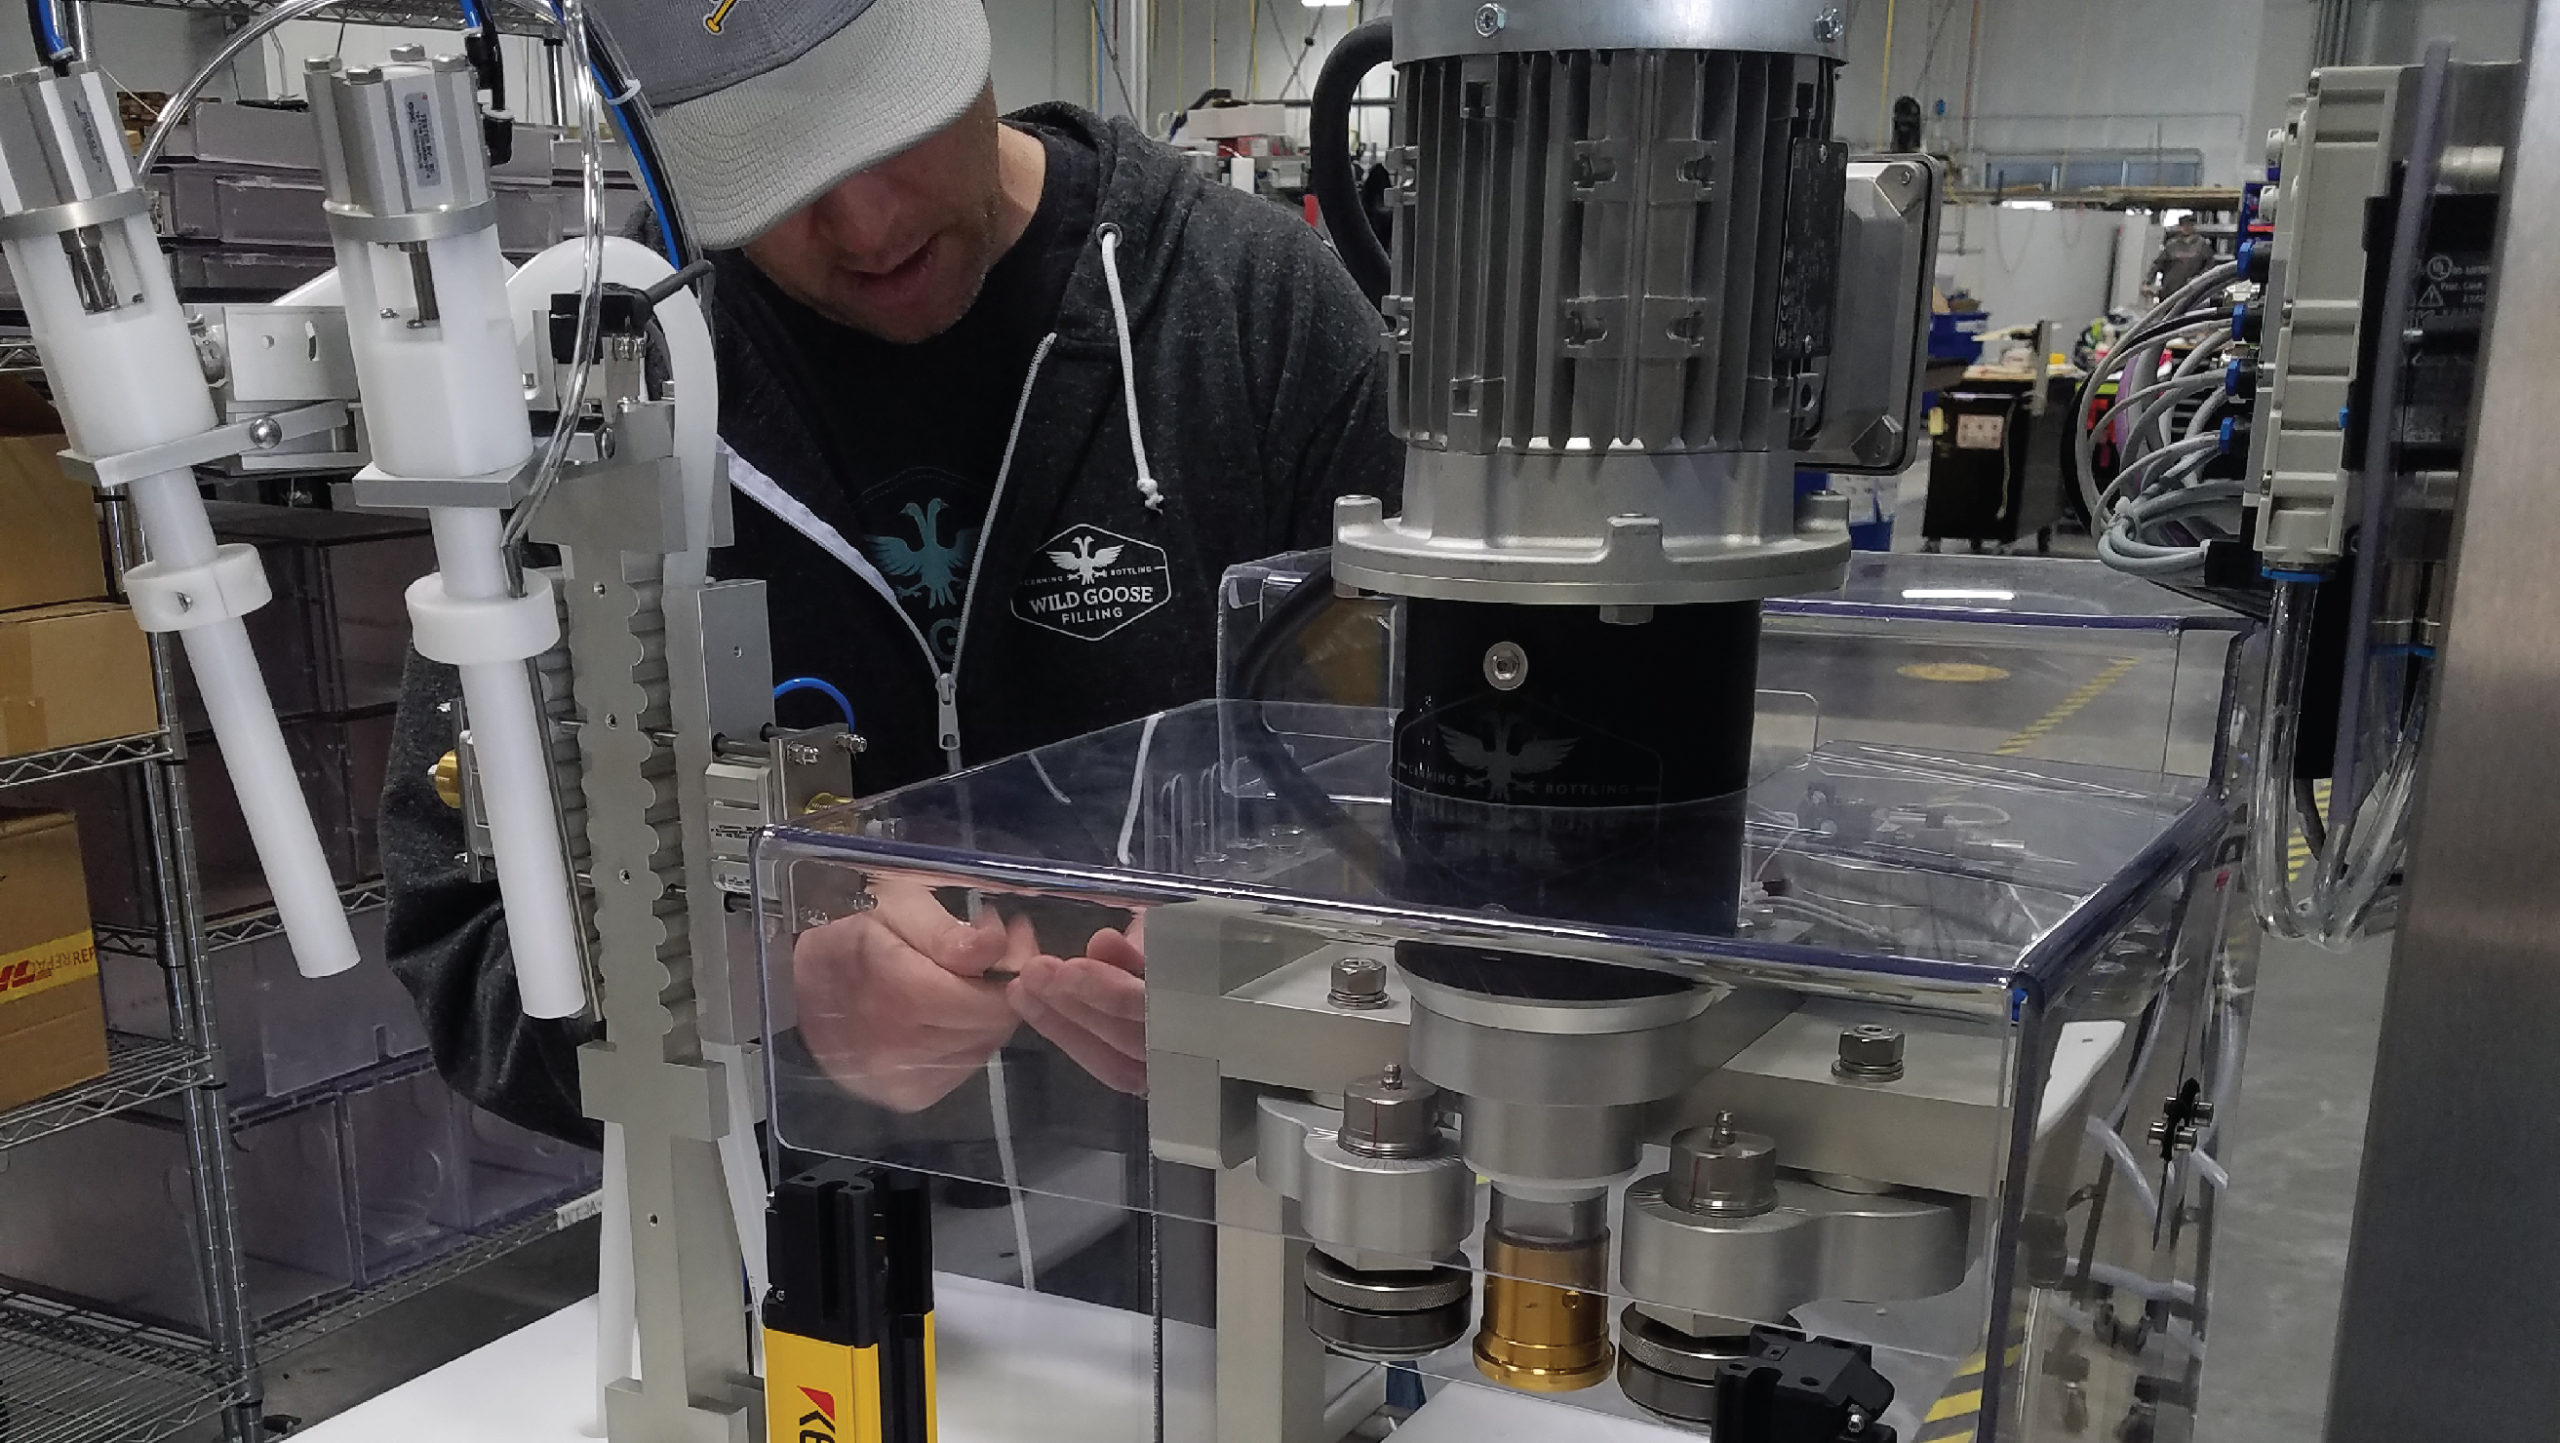 Wild Goose Filling WGC-50 Canning Line in Production